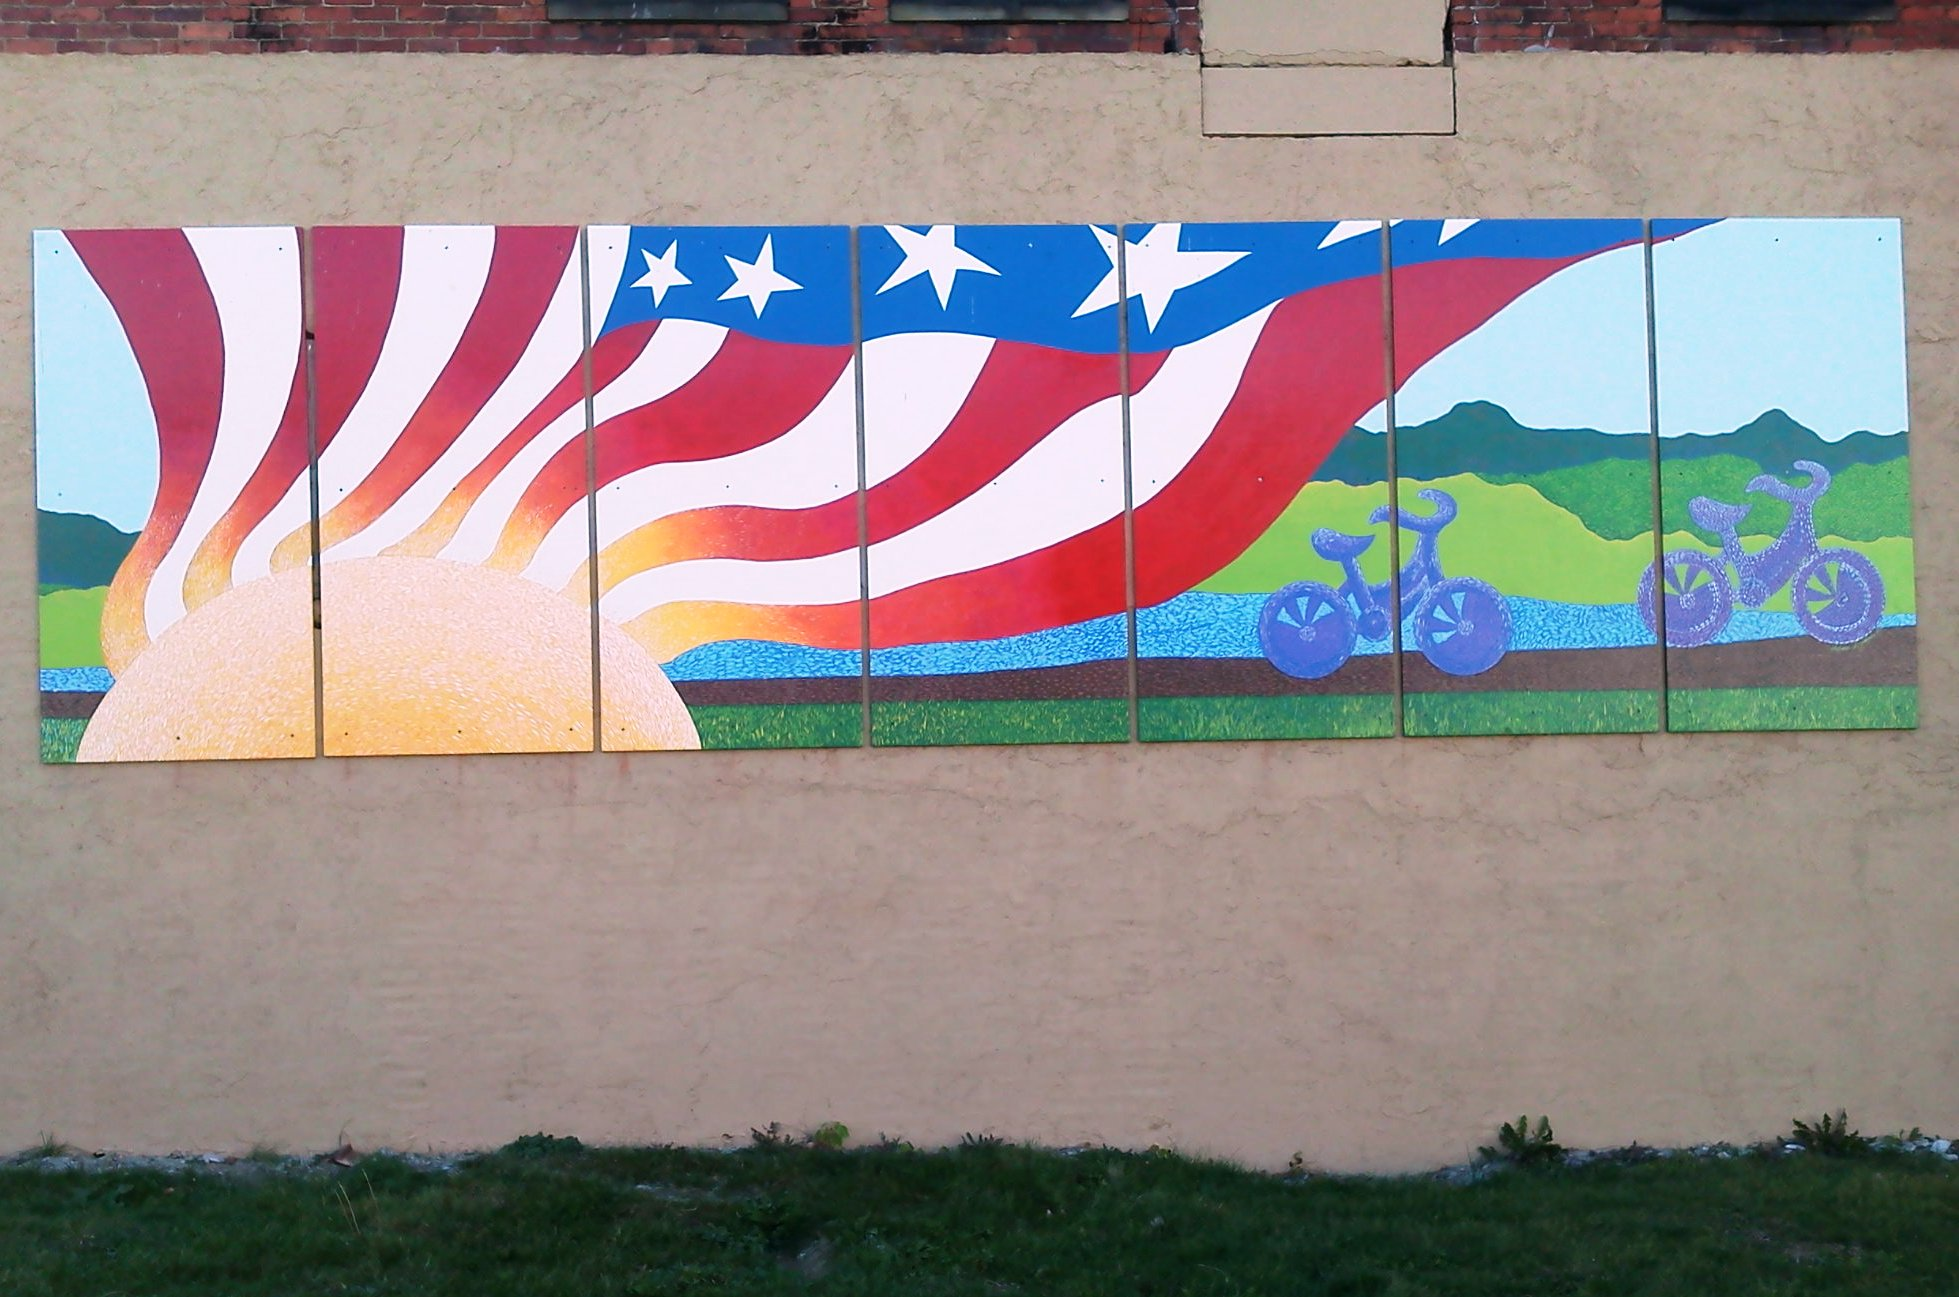 VFW Mural, Point Marion.